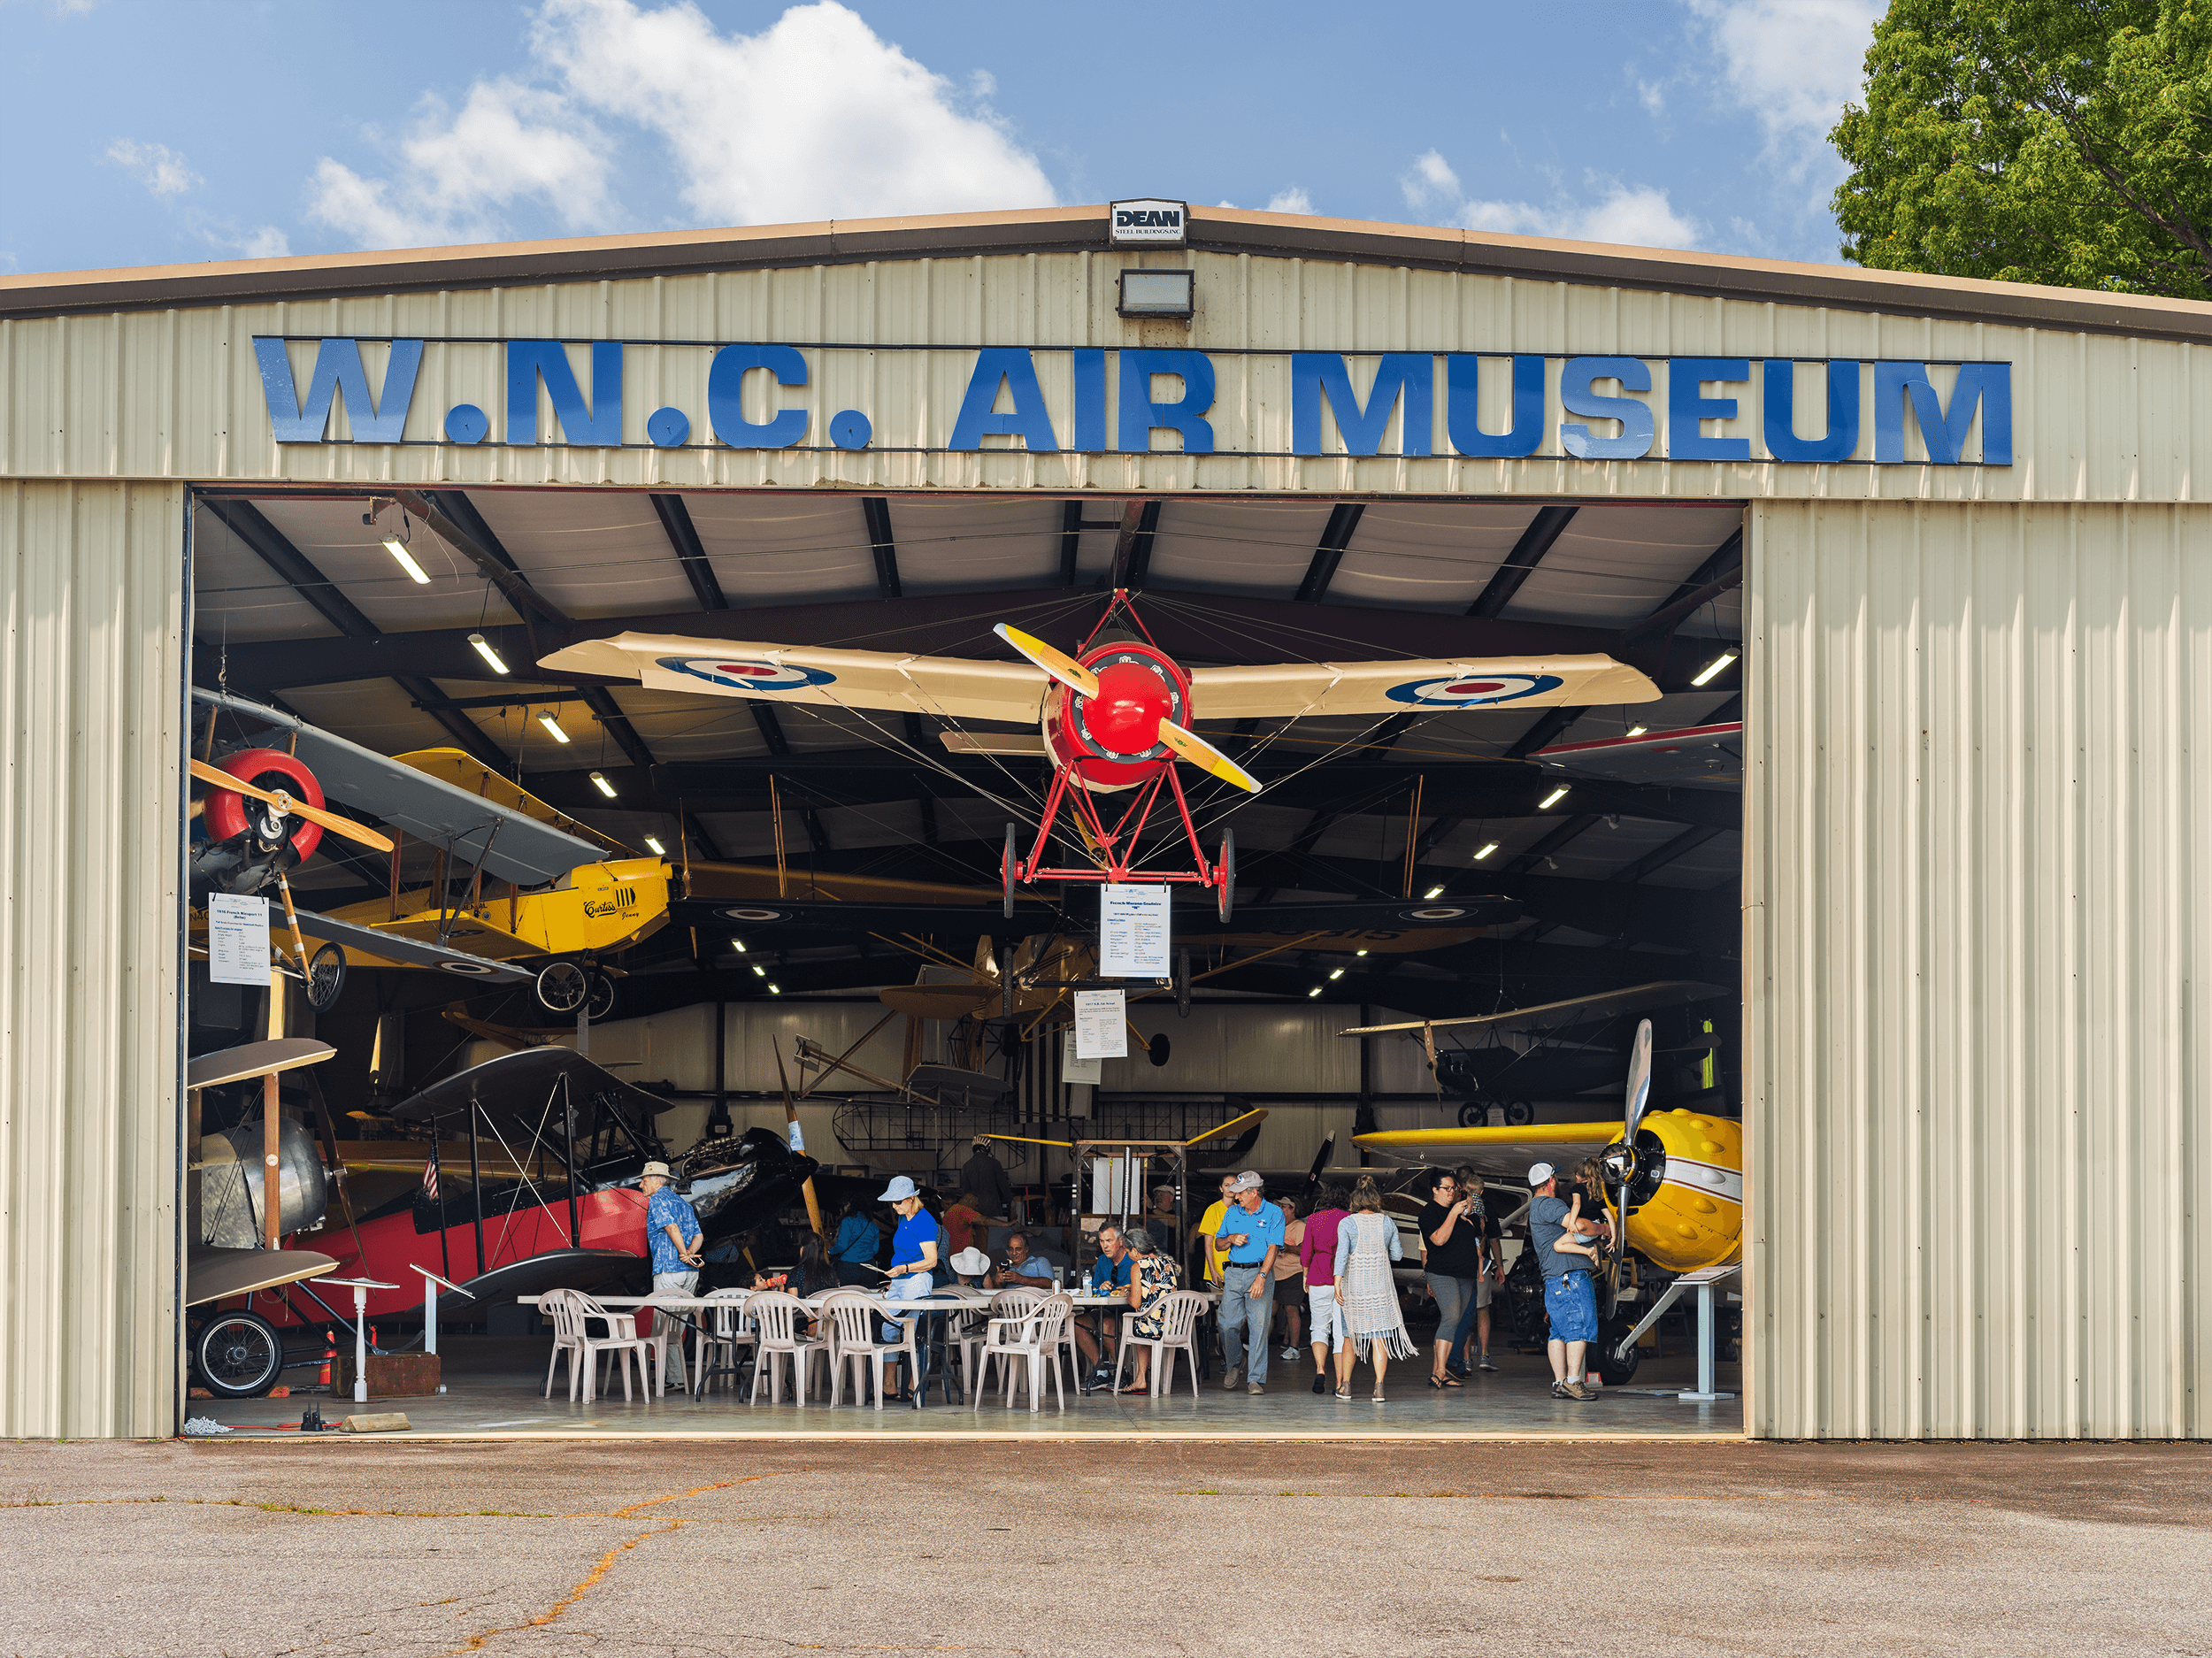 The Western North Carolina Air Museum in Hendersonville is a gem for airplane enthusiasts. Passionately dedicated to aircraft, the museum pays tribute to the region's fascinating aviation history and aims to preserve this heritage and share it with its guests.